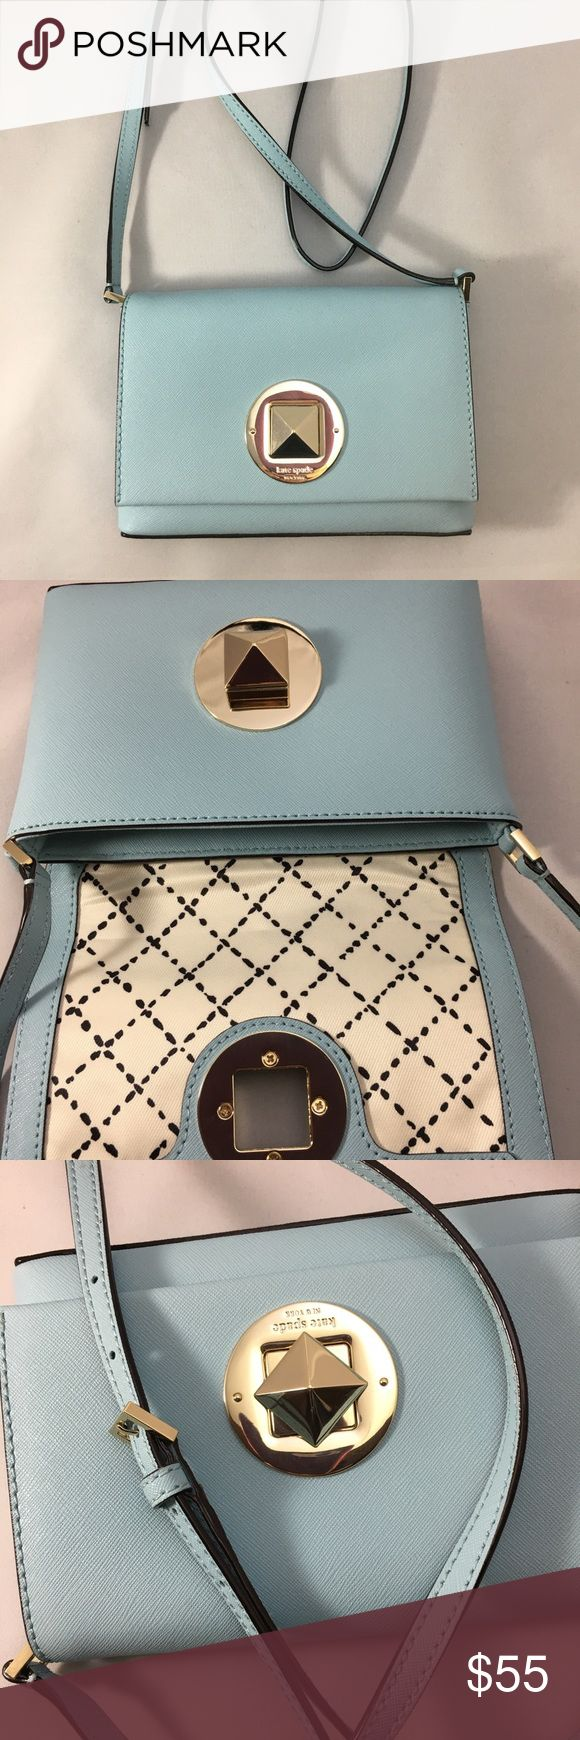 Kate spade newbury lane crossover bag teal purse Crossover small messenger bag adjustable strap. Bag had a silver twist closer in front Teal great fashion piece! kate spade Bags Crossbody Bags